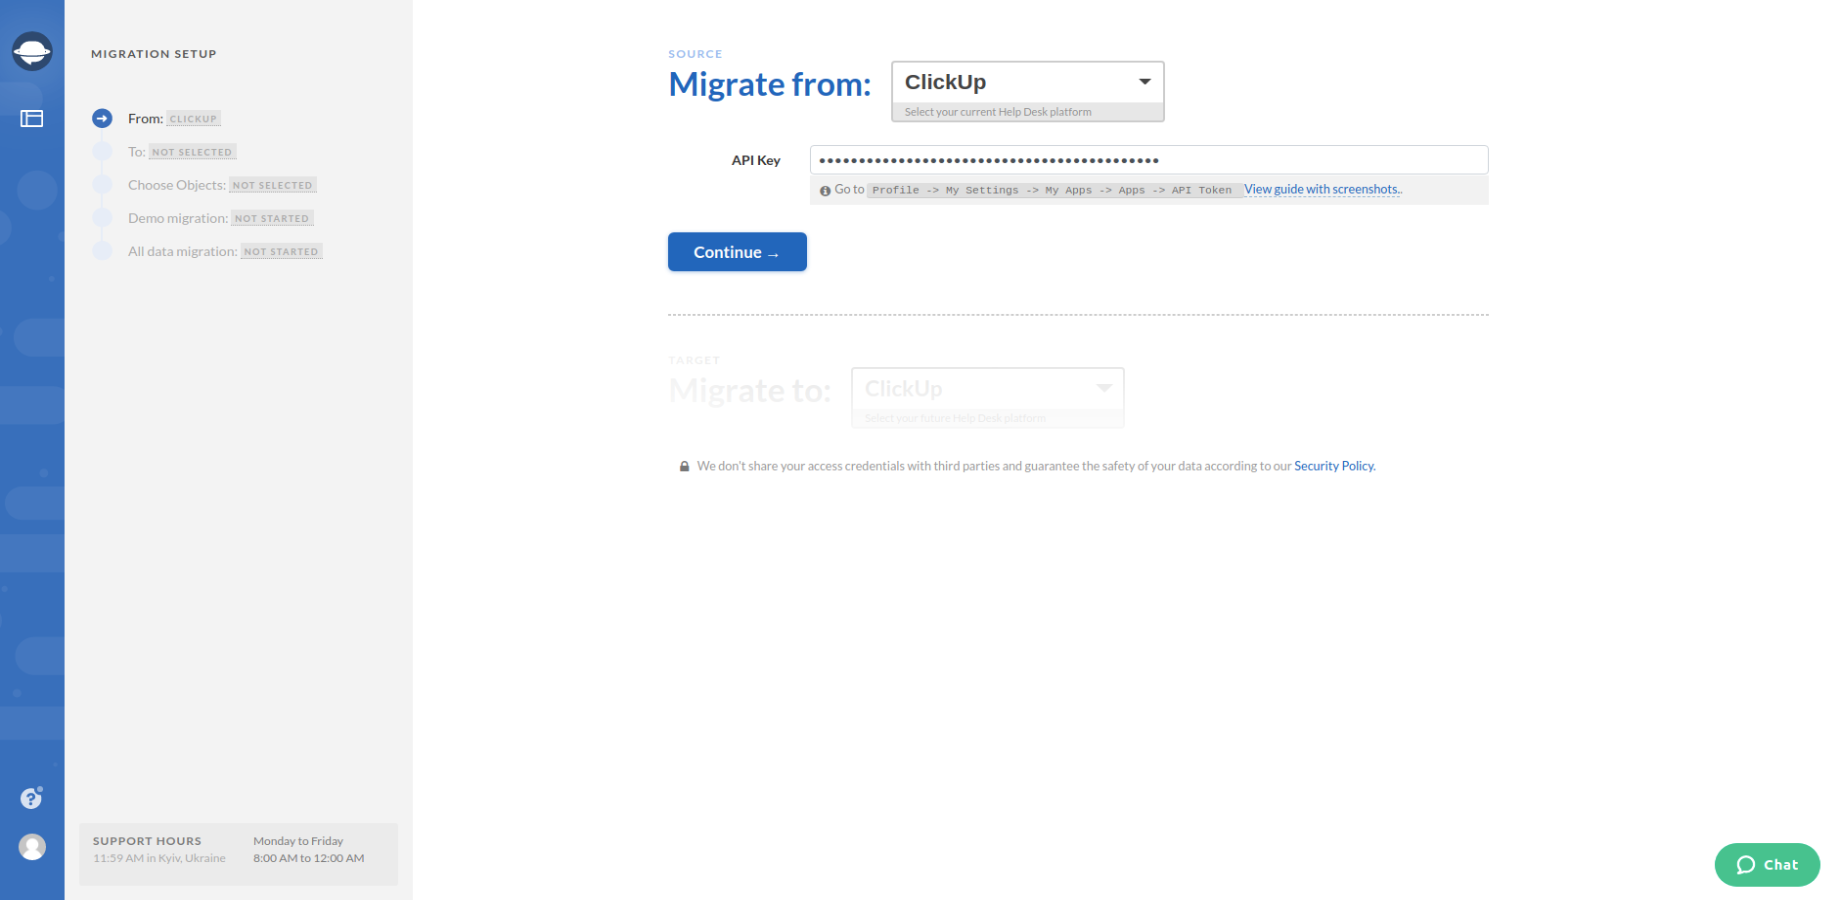 Migrating from ClickUp